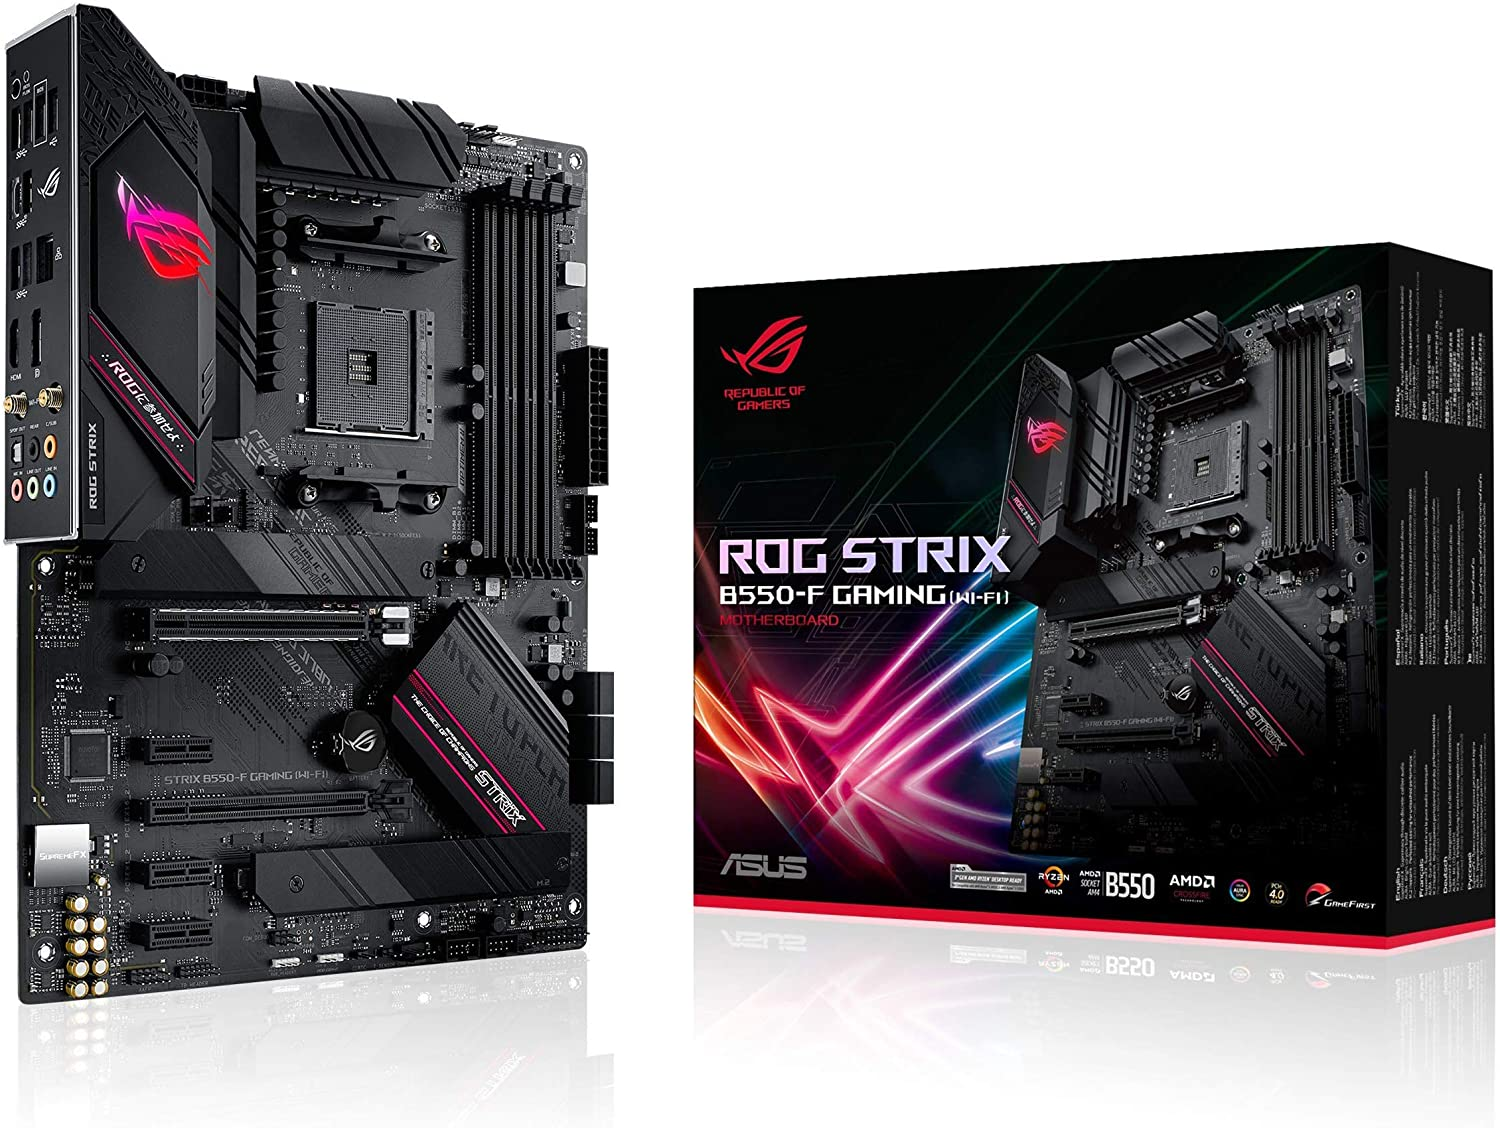 ASUS ROG Strix B550-F Gaming (WiFi 6) AMD AM4 (3rd Gen Ryzen ATX Gaming Motherboard (PCIe 4.0, 2.5Gb LAN, BIOS Flashback, HDMI 2.1, Addressable Gen 2 RGB Header and Aura Sync)